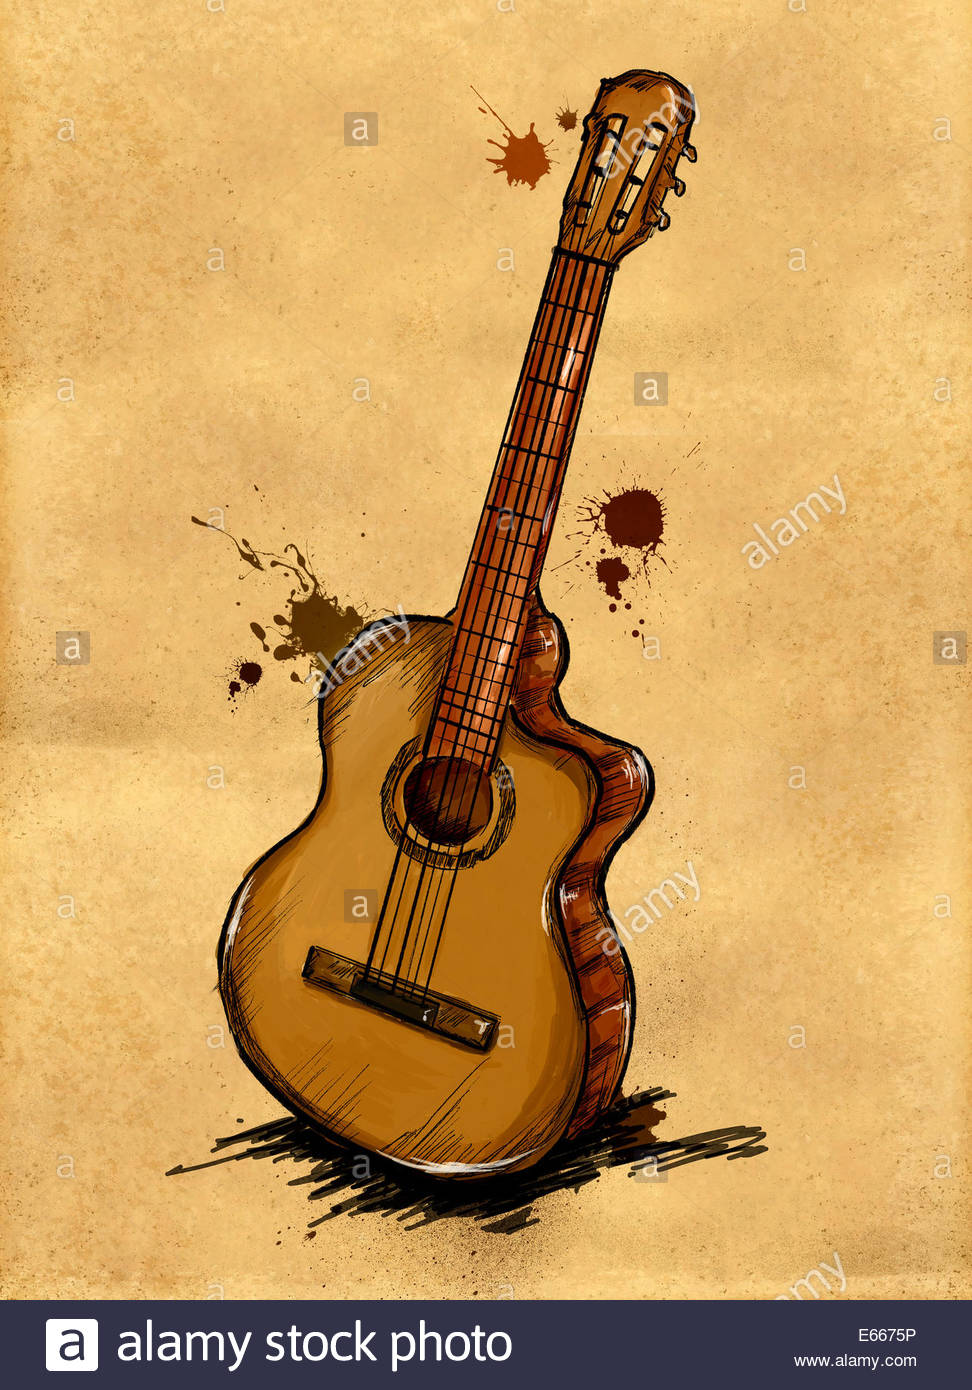 972x1390 Guitar Painting Paper Canvas Brown Art Drawing Stock Photo